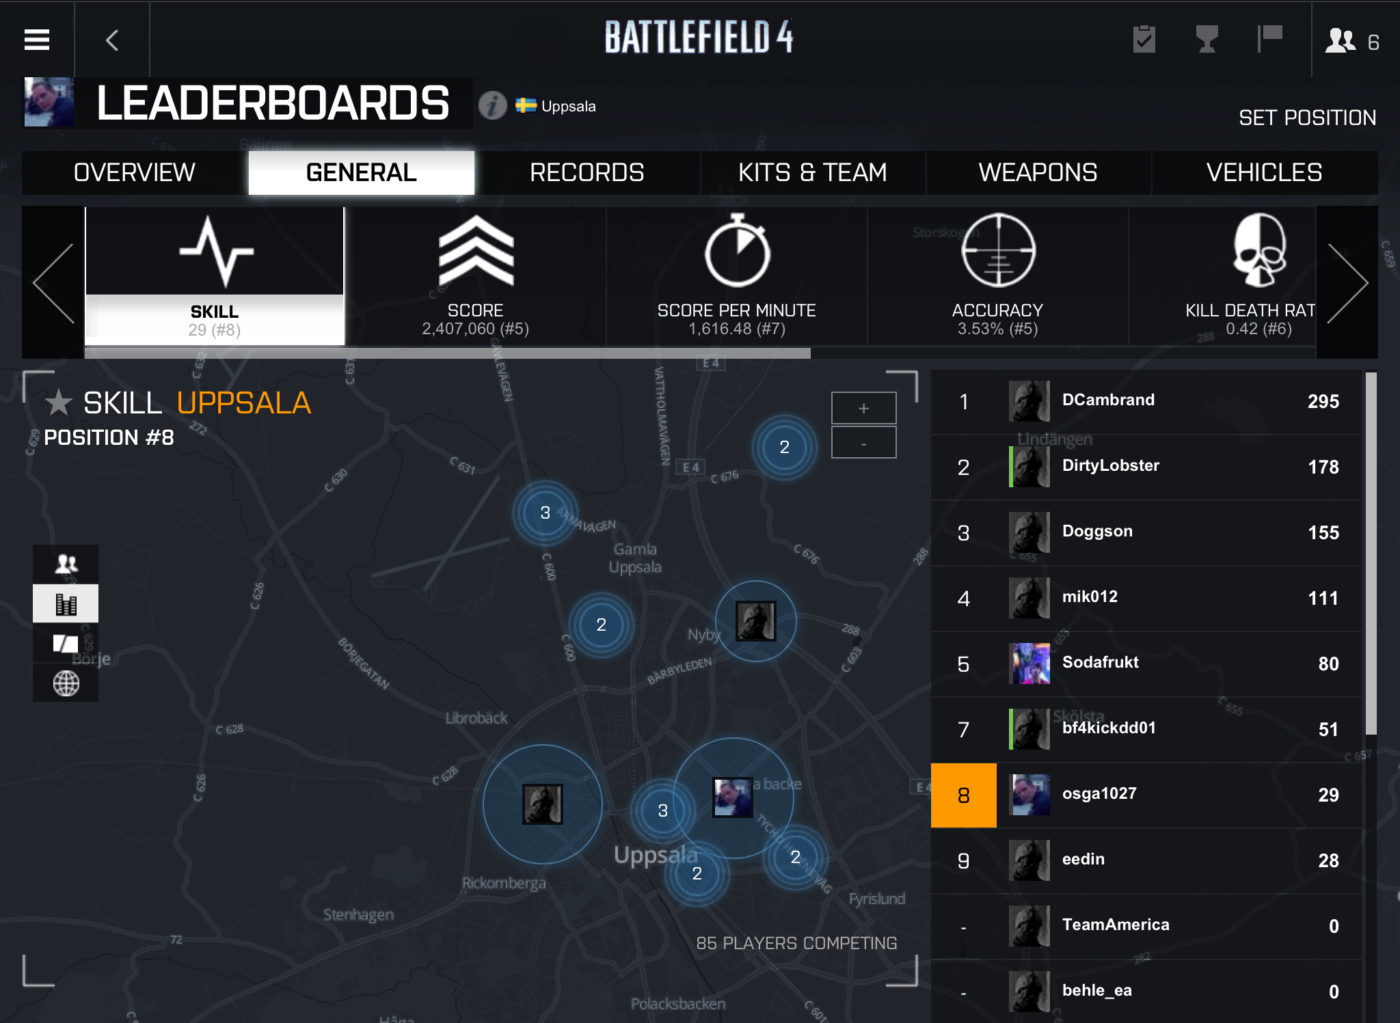 how to complete assignments on battlefield 4